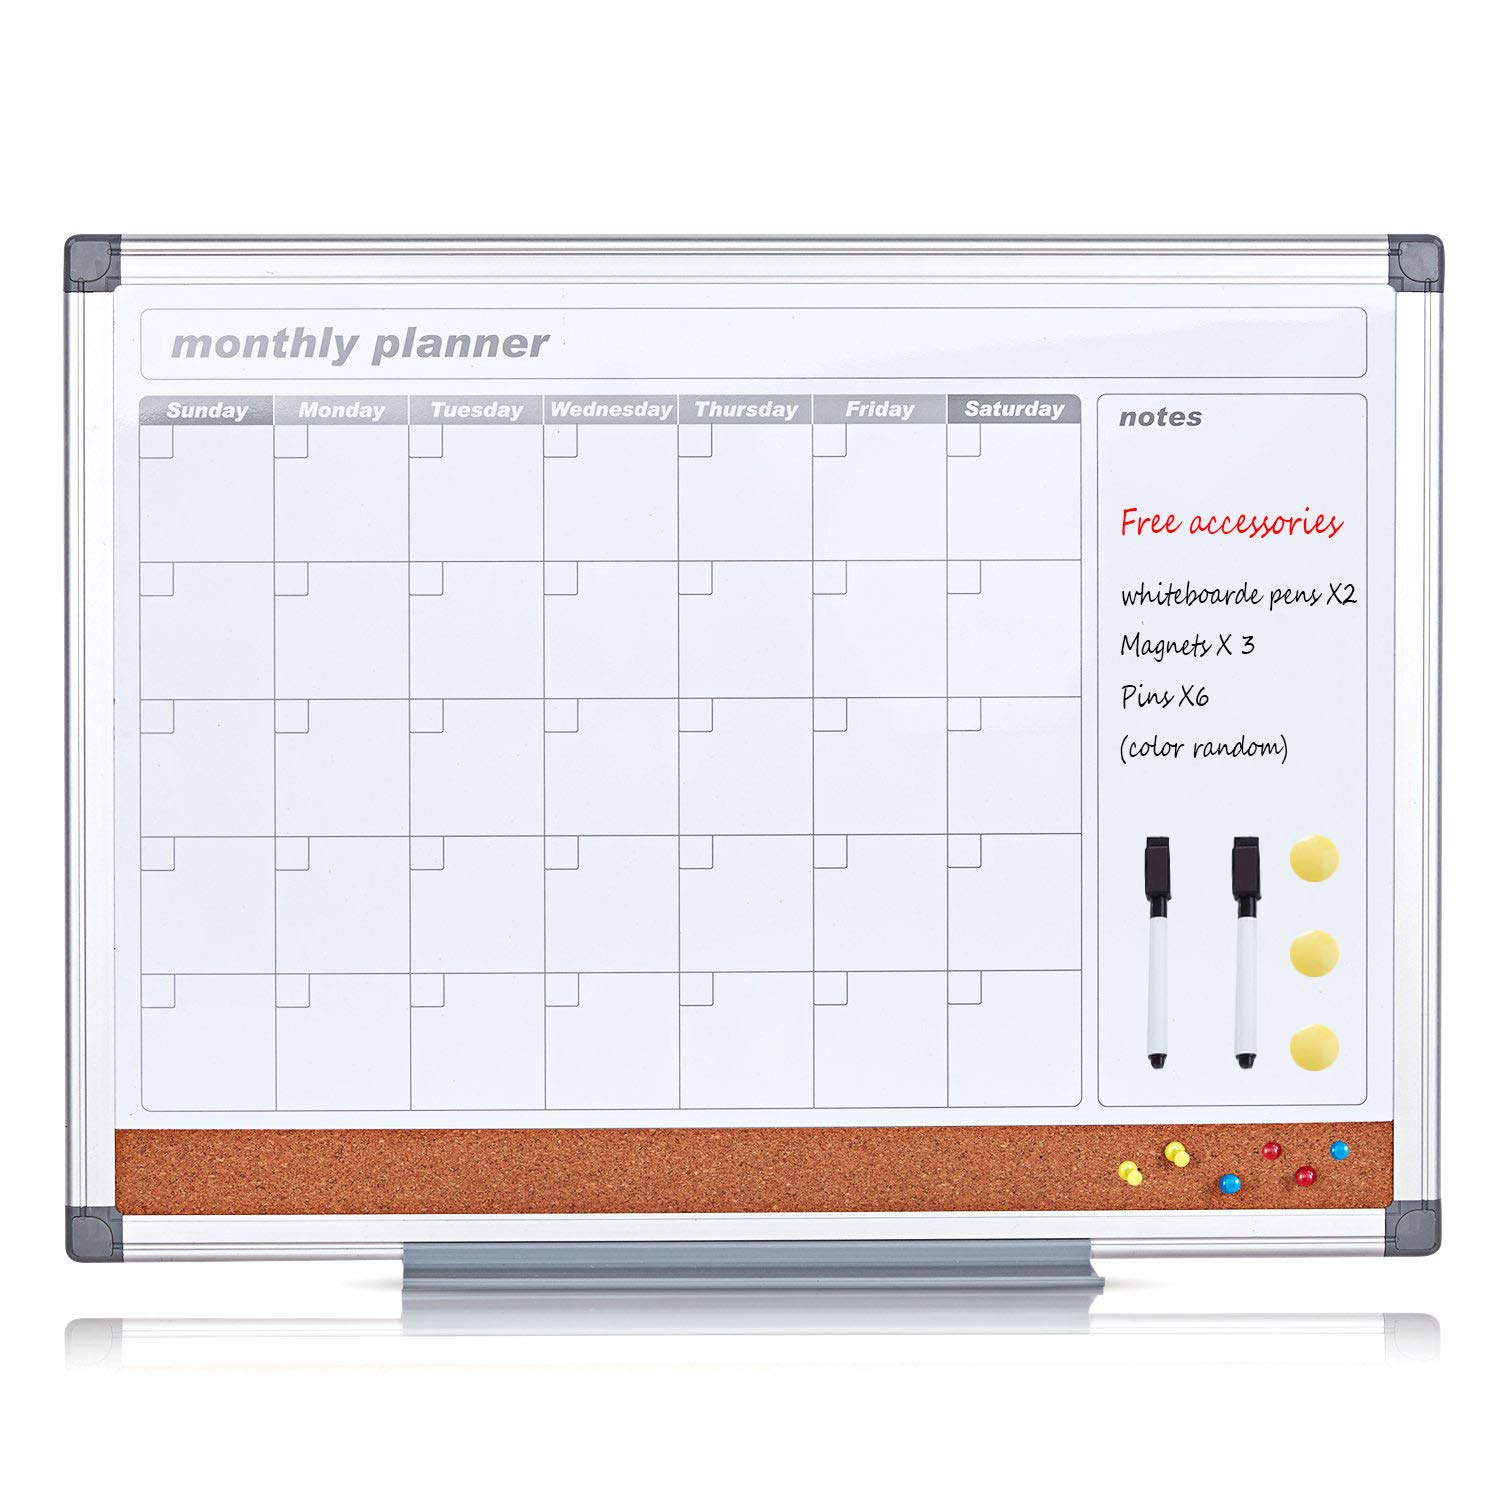 MAKELLO Combination Board Dry Erase Monthly Calendar Whiteboard for Office, Classroom, Kitchen and Bedroom, 24x18 inches